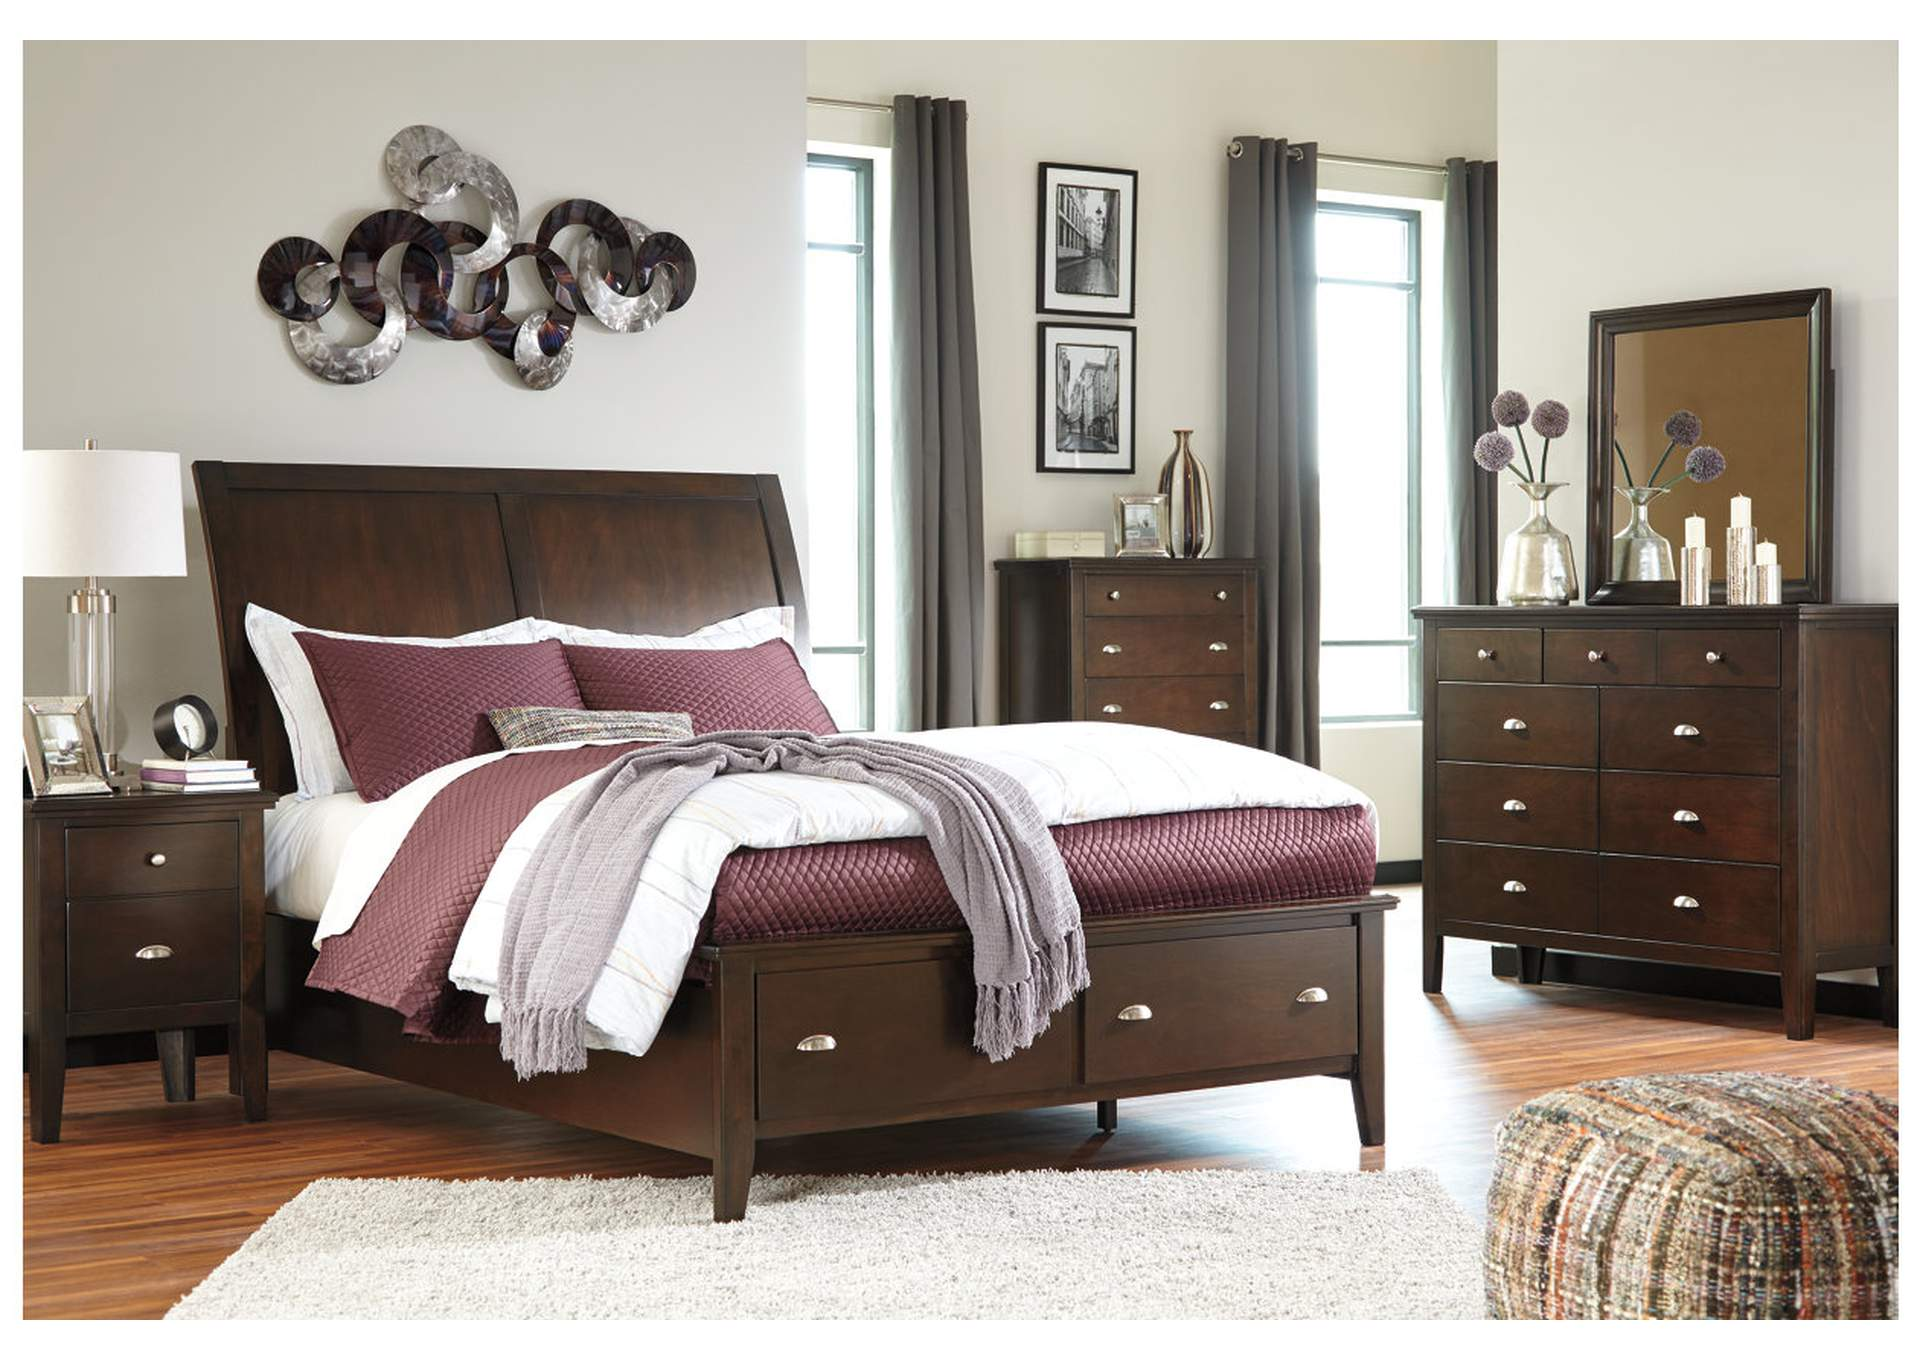 Evanburg Brown Queen Sleigh Storage Bed w/Dresser, Mirror, Drawer Chest & Nightstand,Signature Design By Ashley